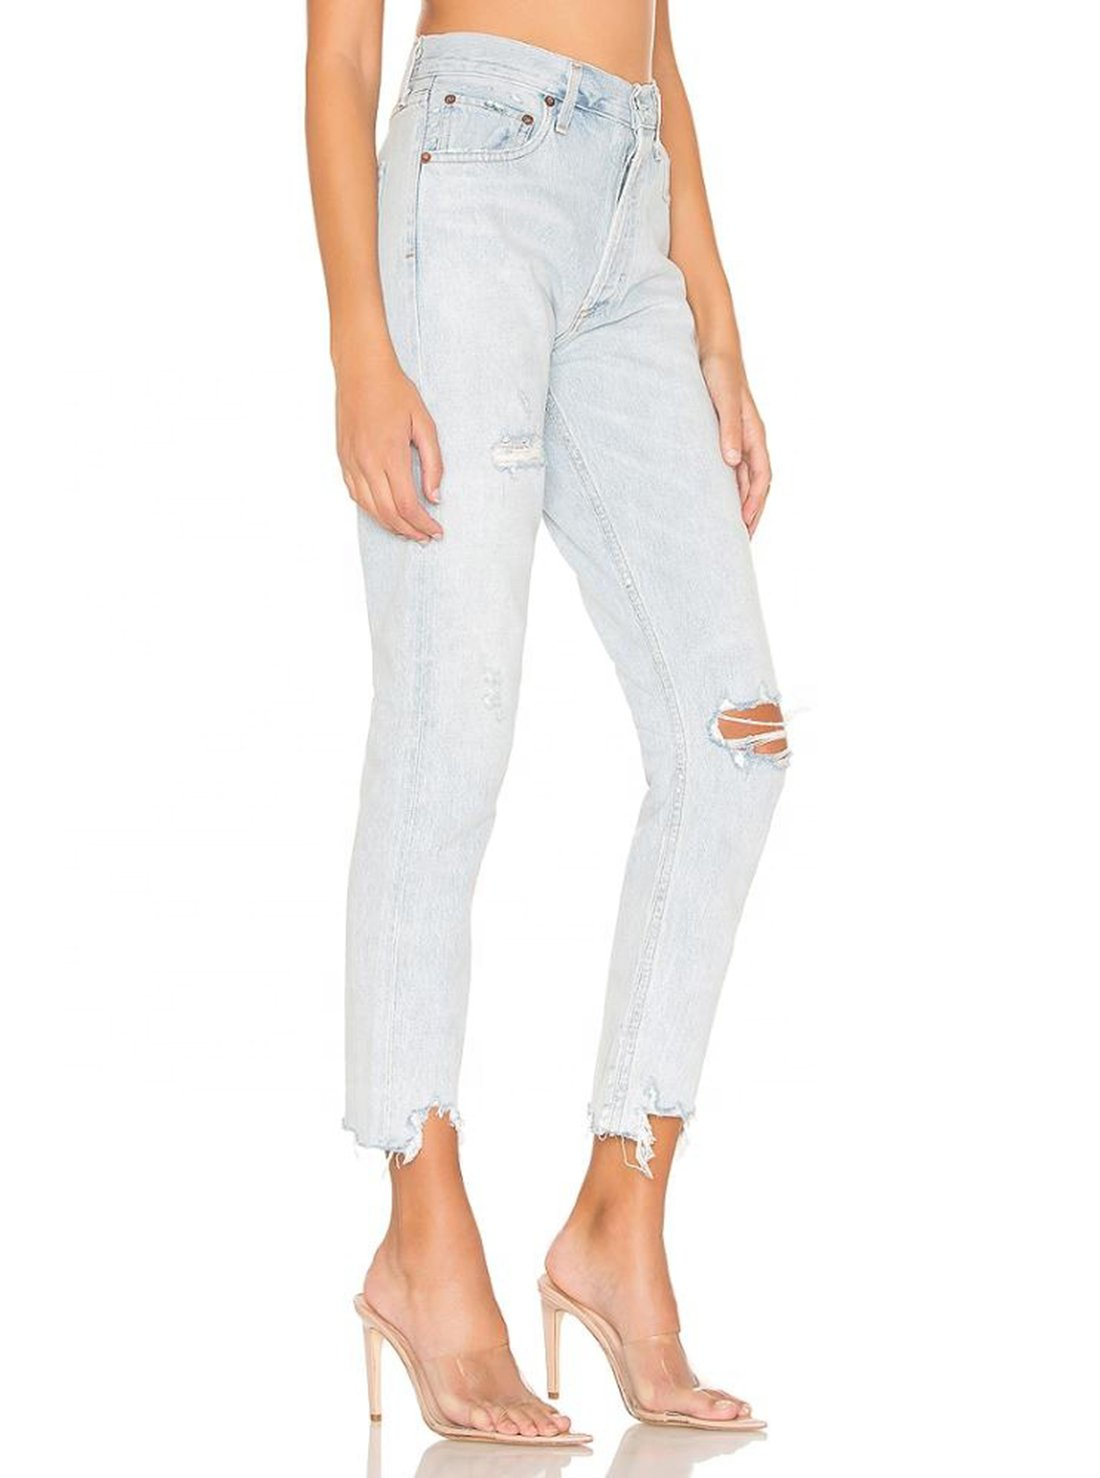 Button Fly Ladies Jeans